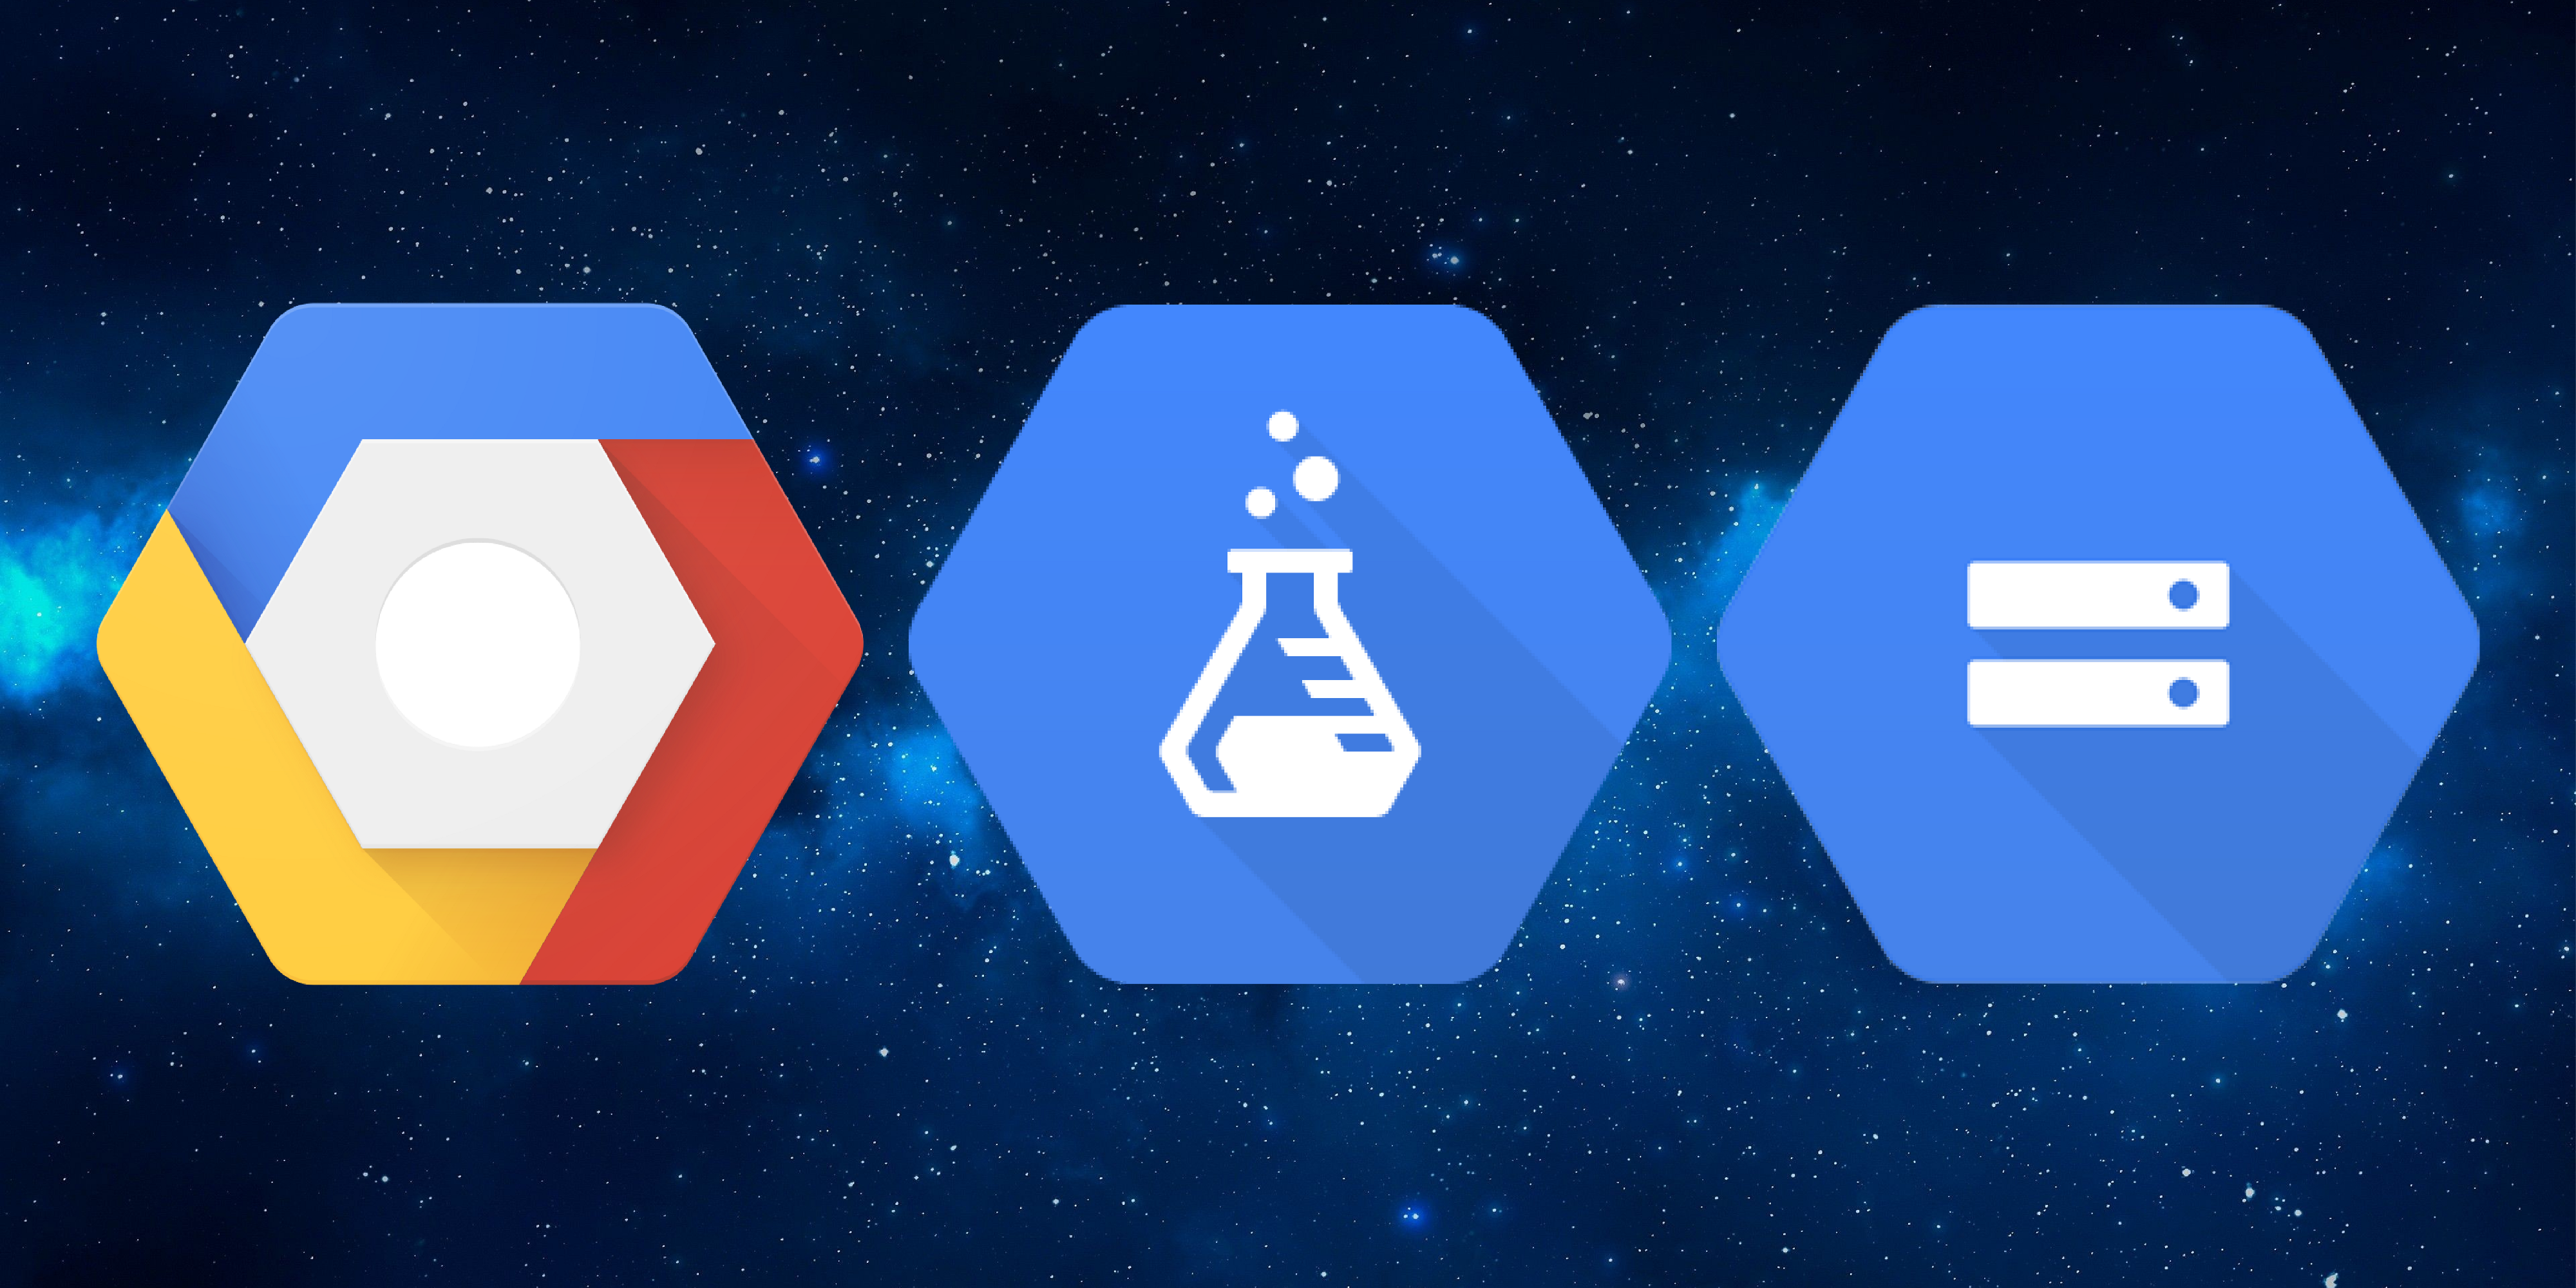 How to run a Notebook for Data Science on Google Cloud with